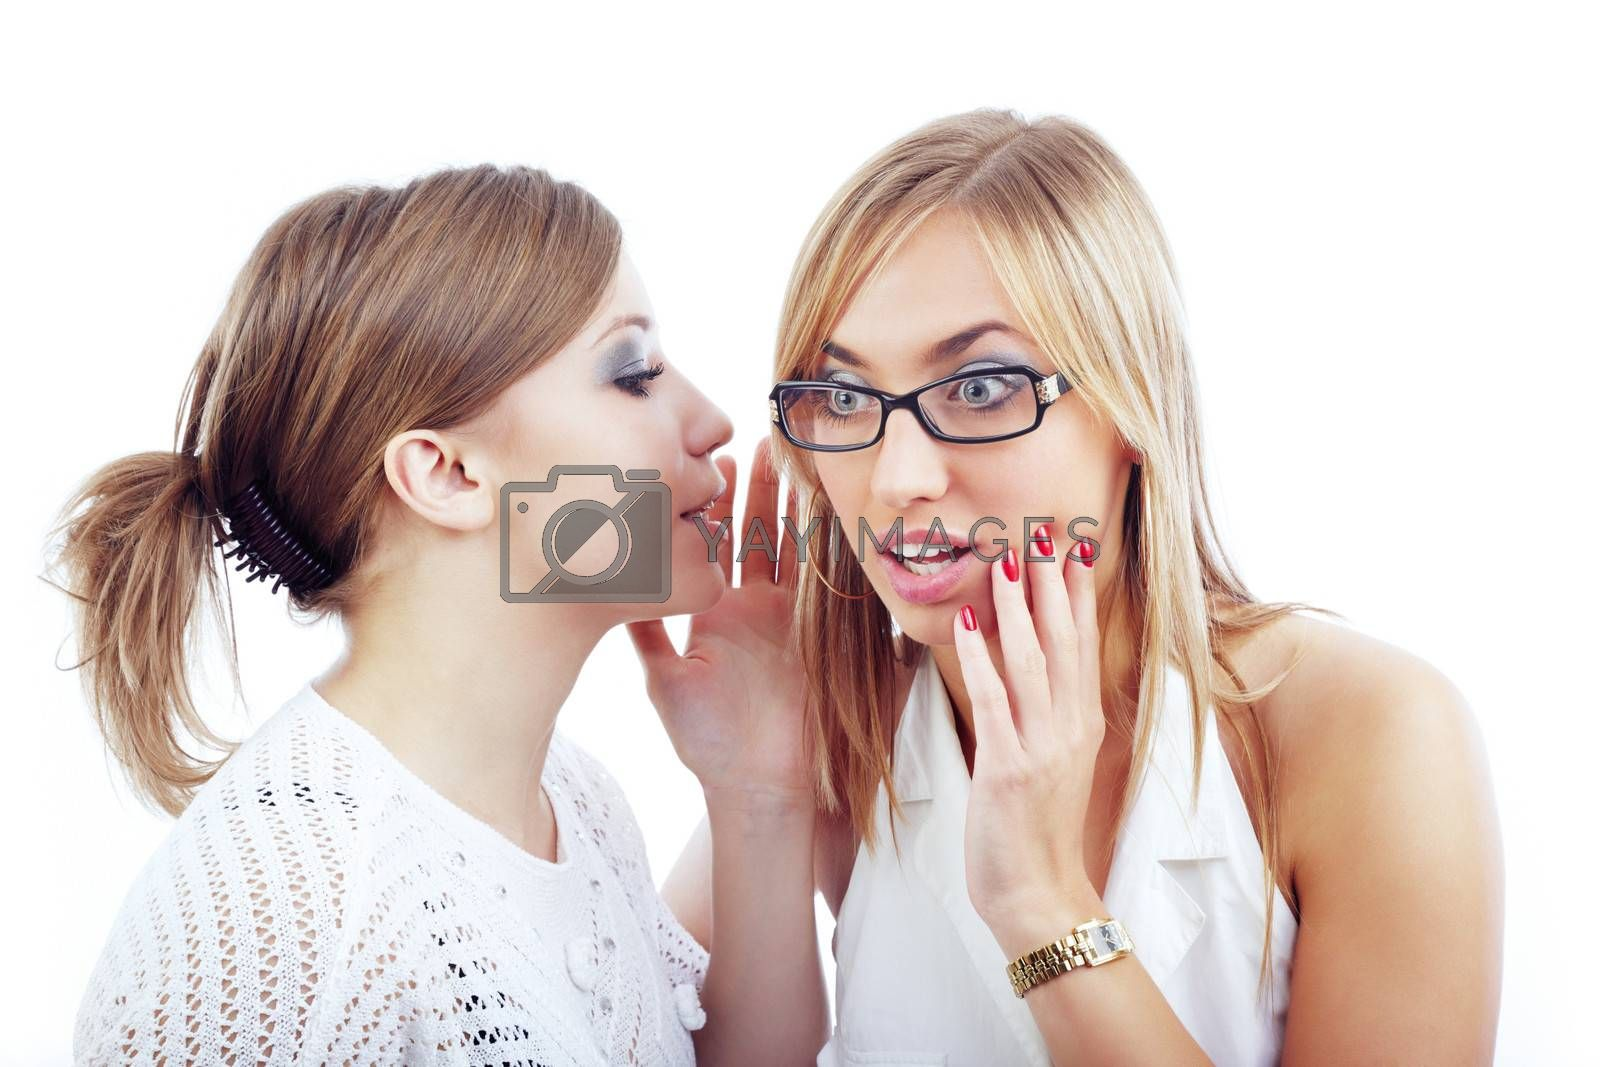 Two women communicating with each other